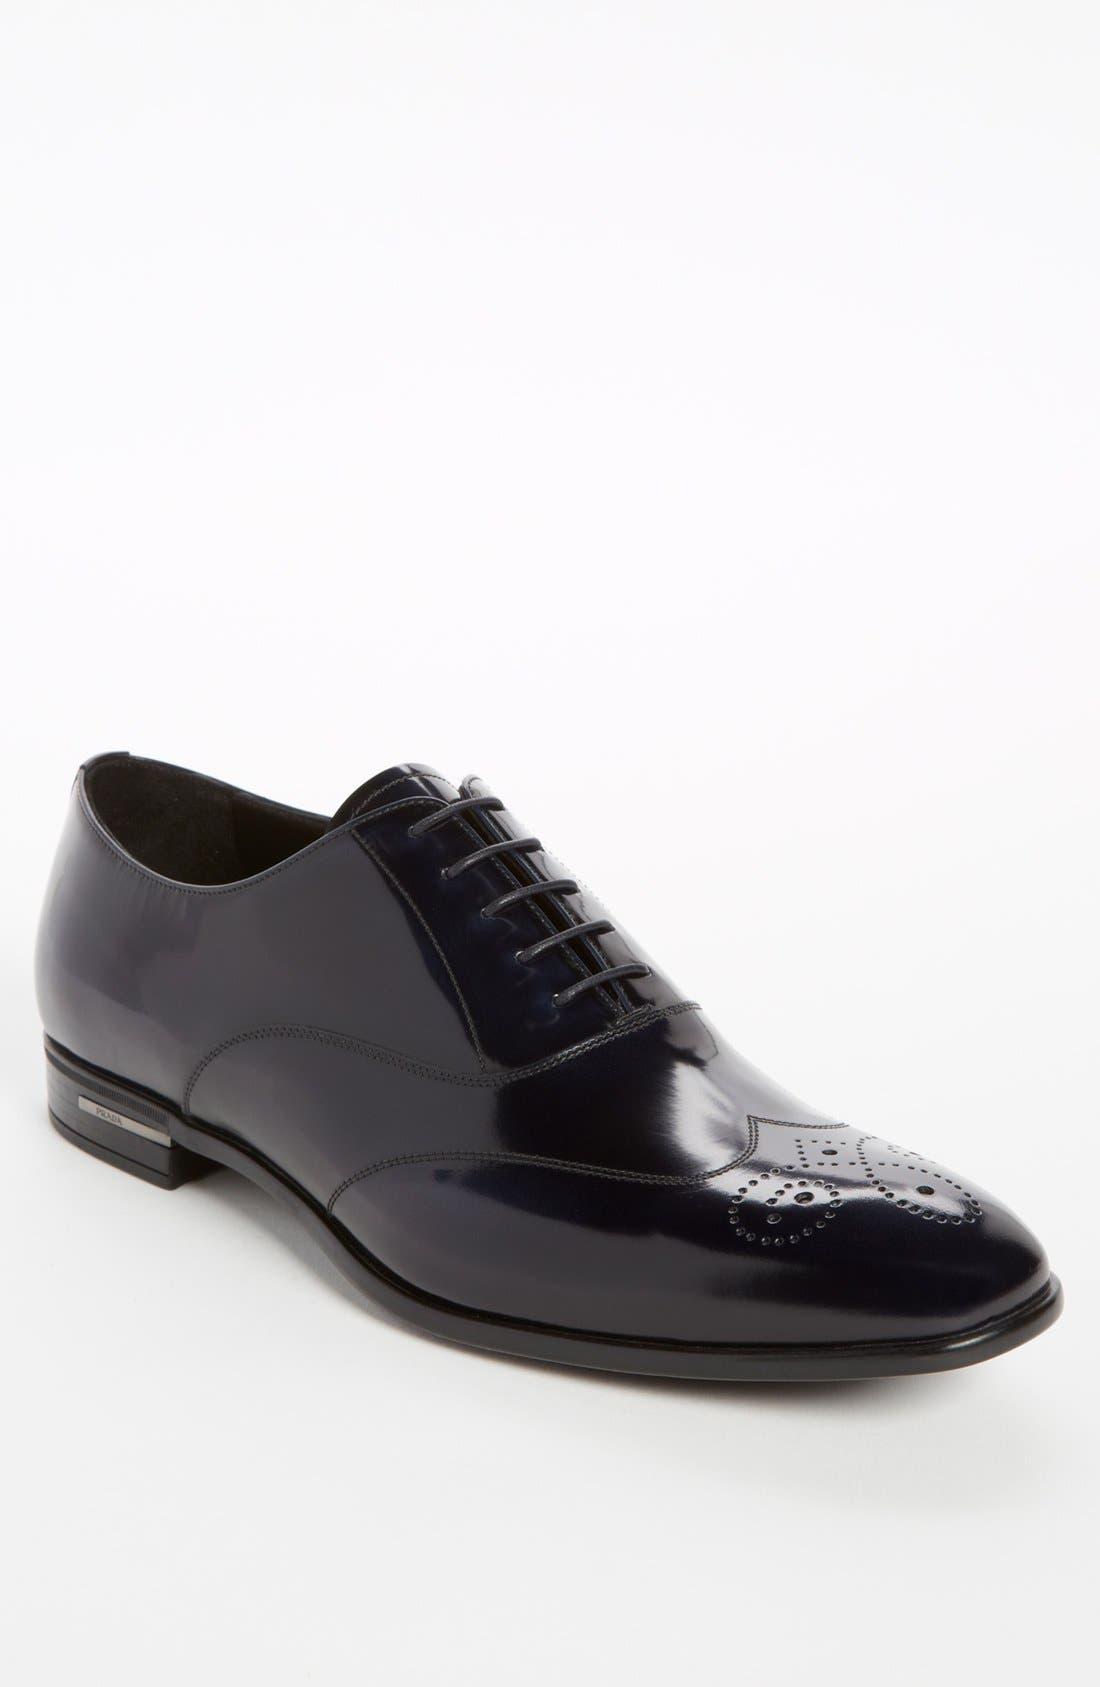 Alternate Image 1 Selected - Prada Medallion Oxford